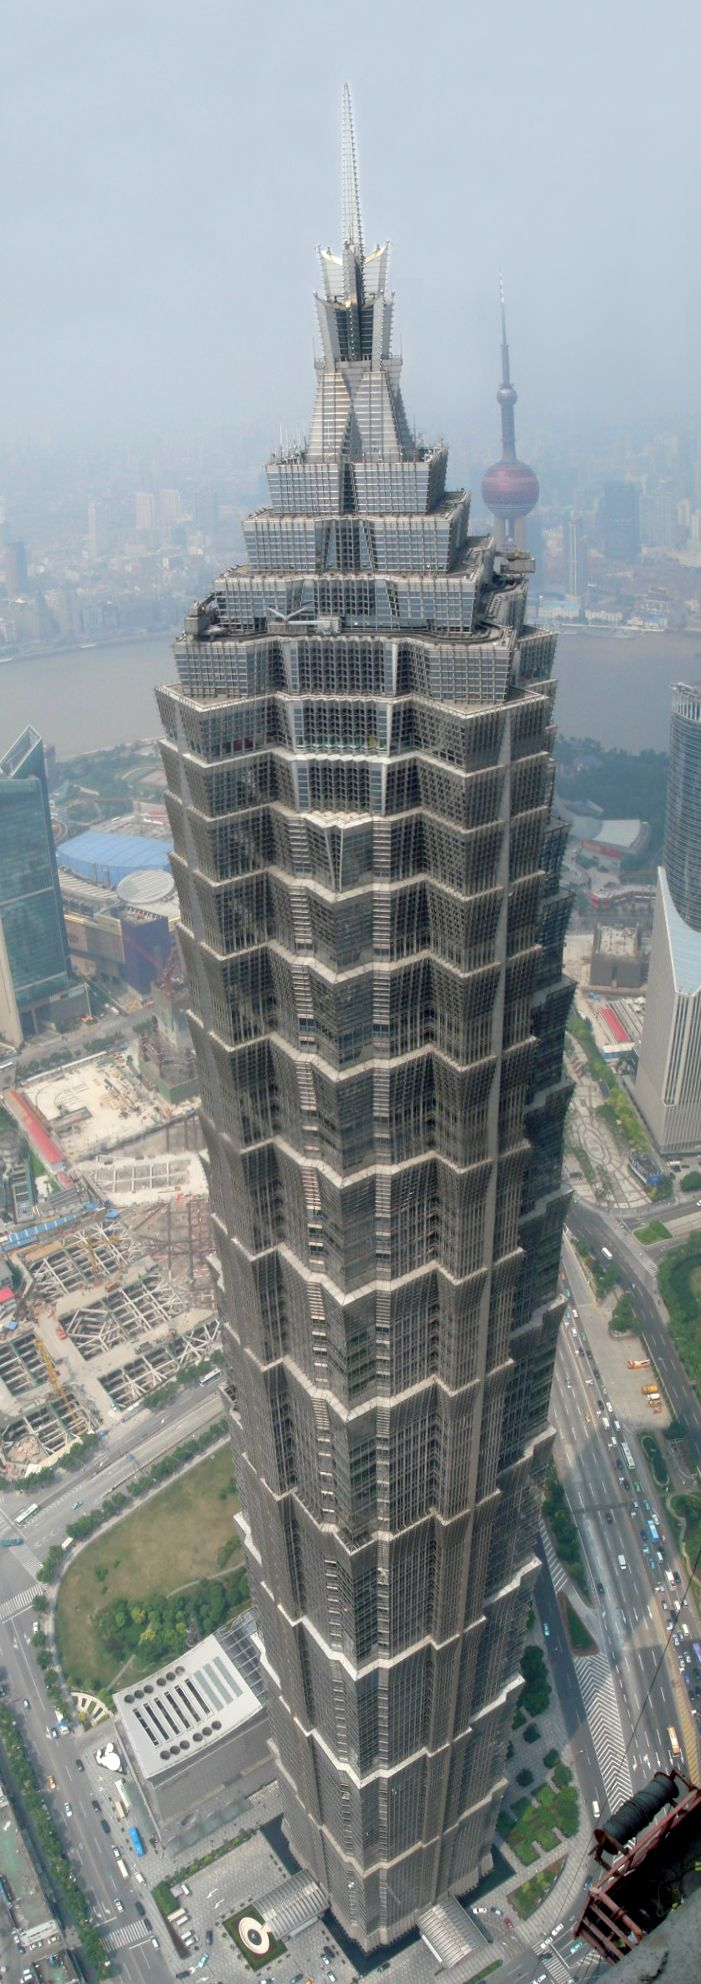 Jin Mao Building In Shanghai China The Tower Has 88 Floors And Is Ft It Contains Grand Hyatt Hotel Until 2007 Was Tallest